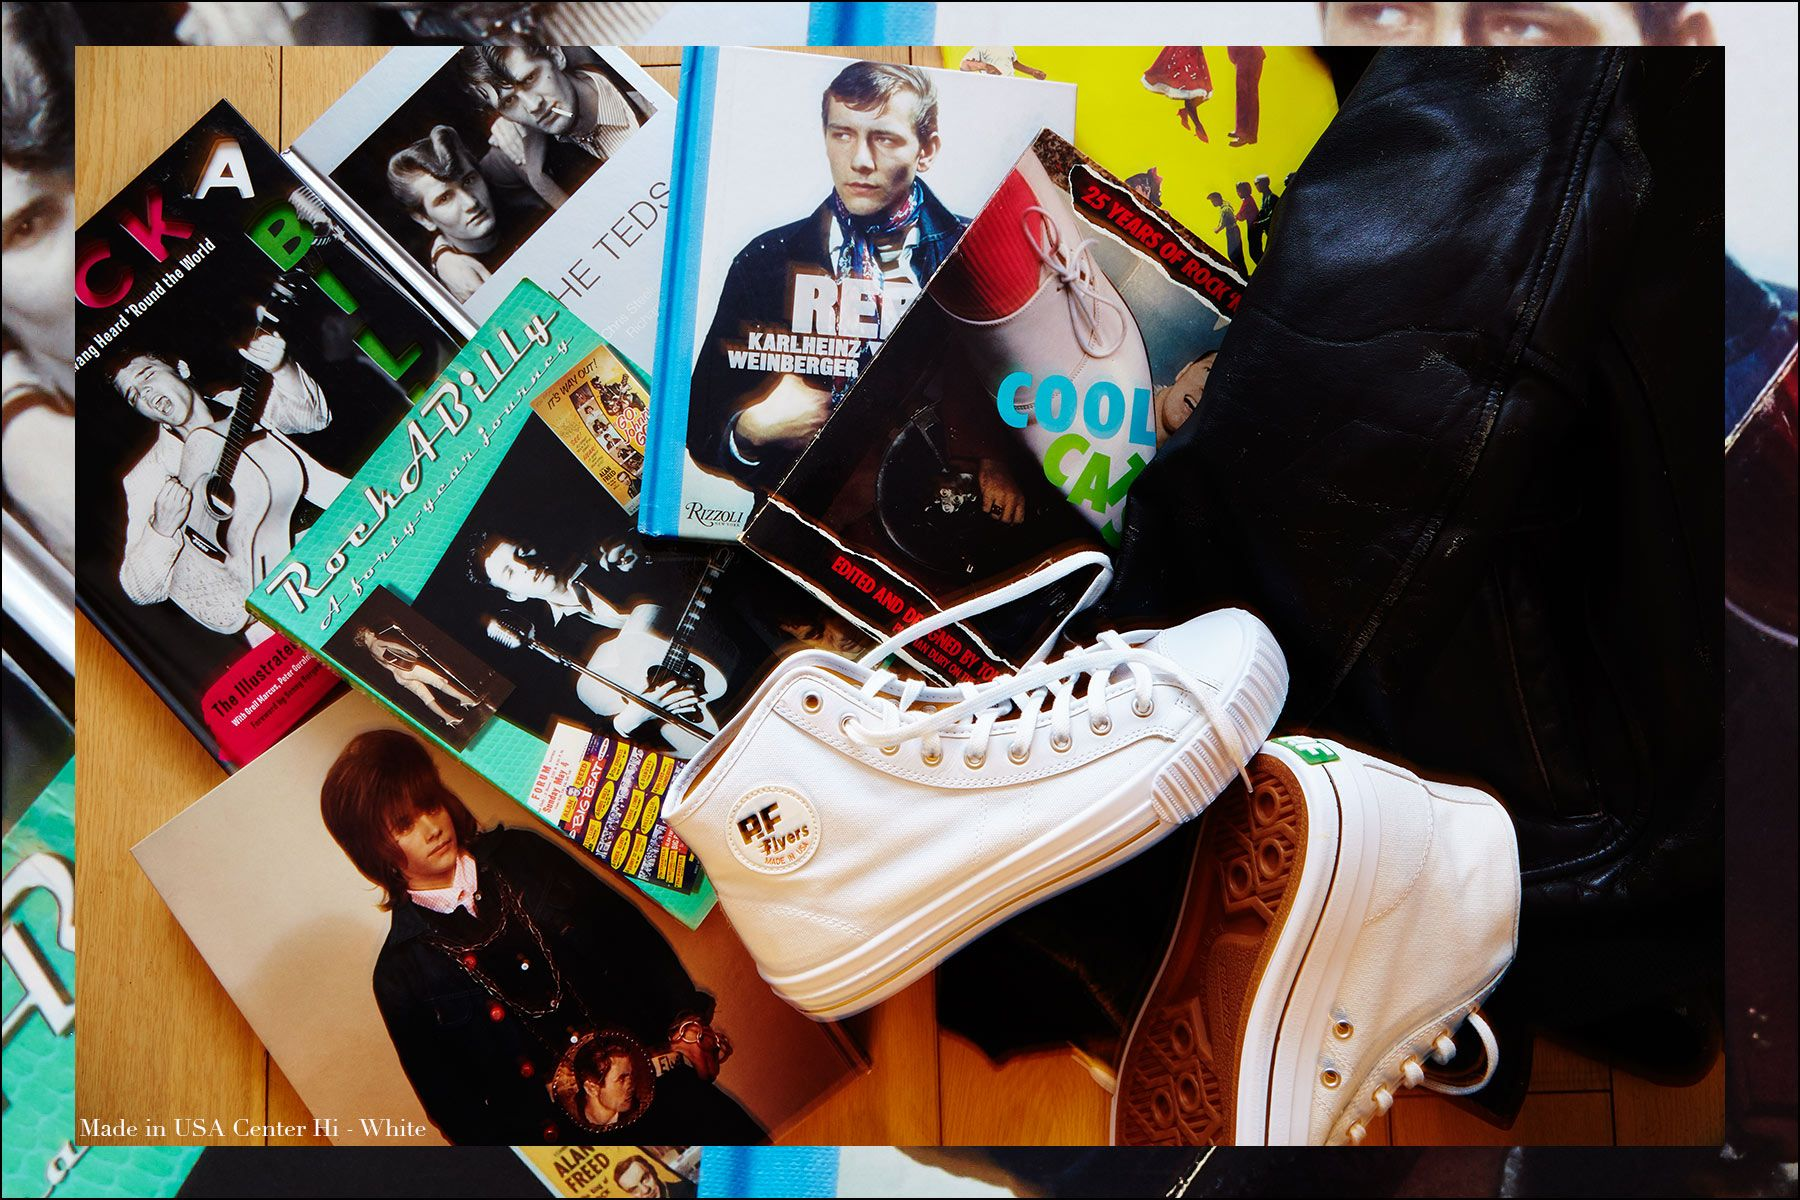 Made in USA Center Hi sneaker in white from PF Flyers. Photographed for Ponyboy magazine NY by Alexander Thompson.